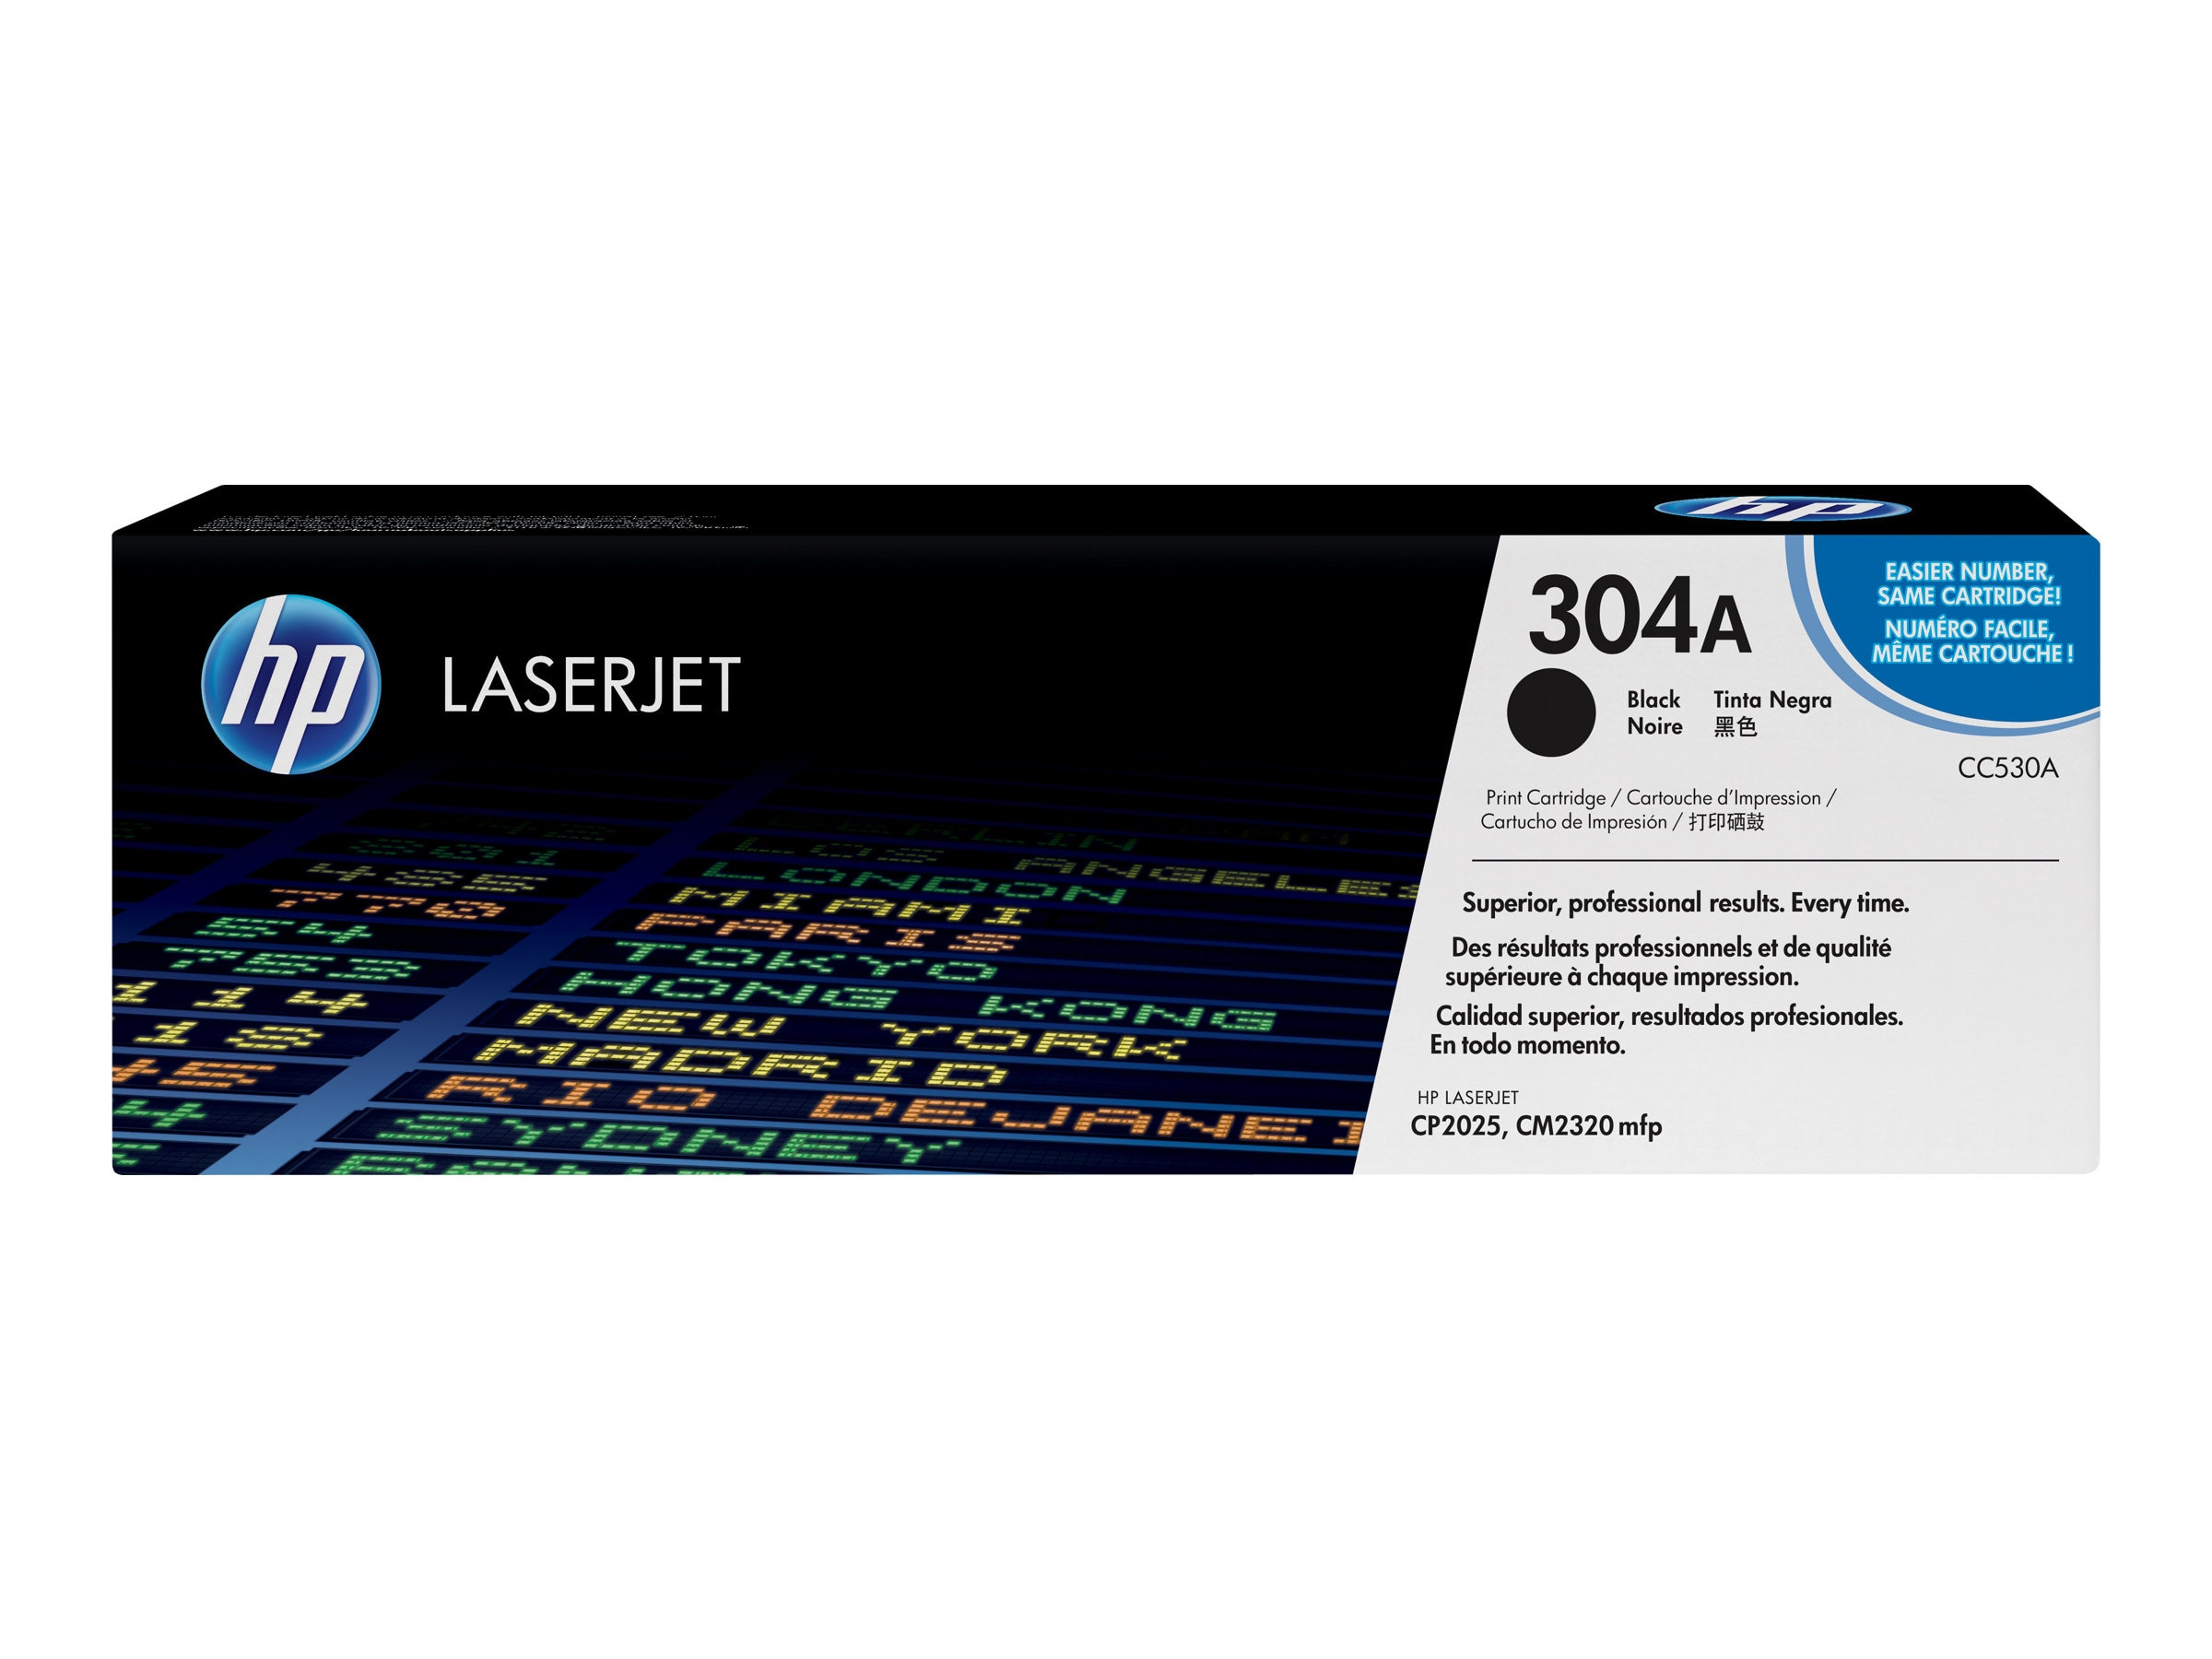 HP 304A (CC530A) Black Original LaserJet Toner Cartridge for HP Color LaserJet CP2025 & CM2320 MFP